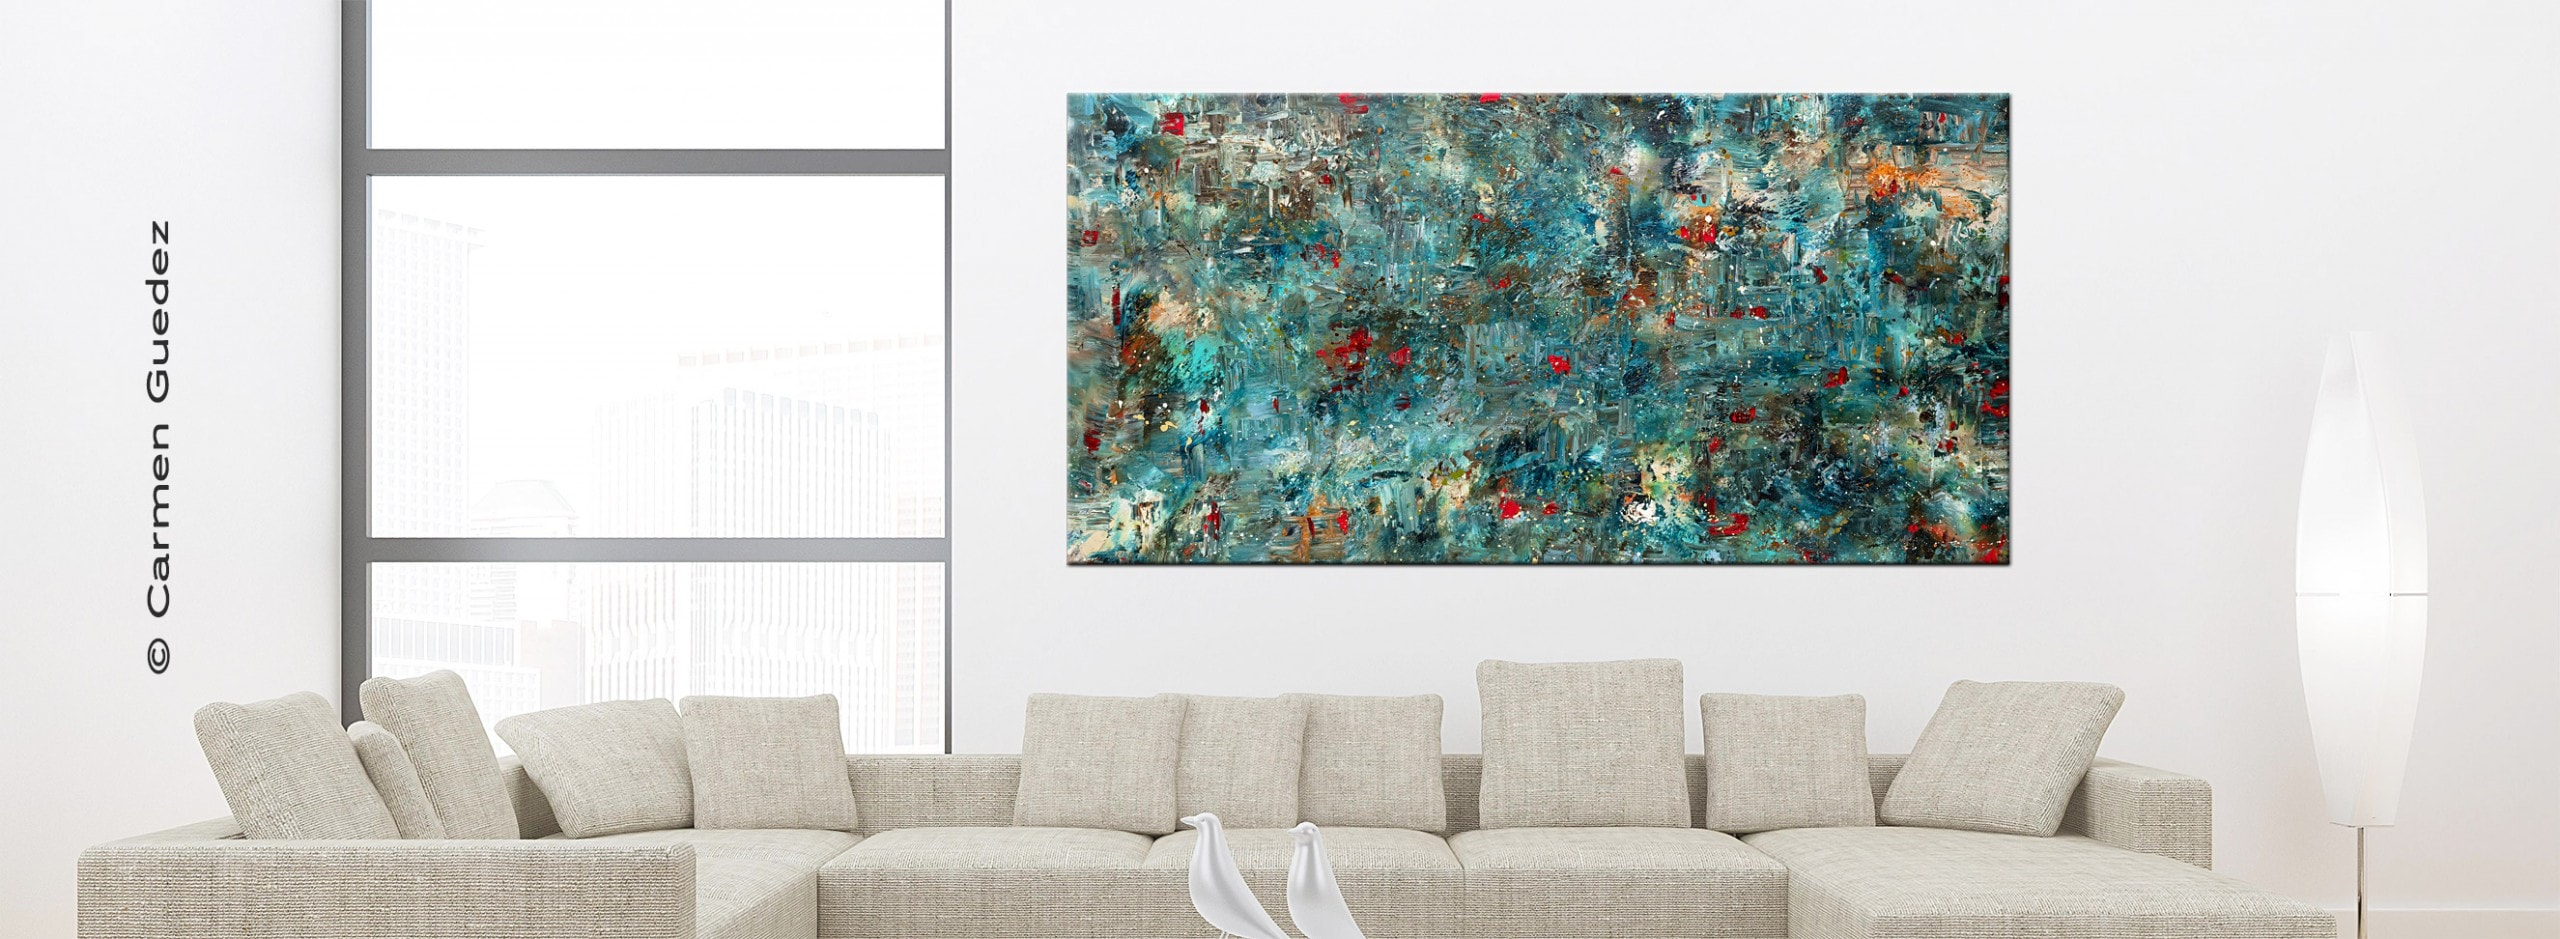 Large Abstract Art Painting Single2 2650 972